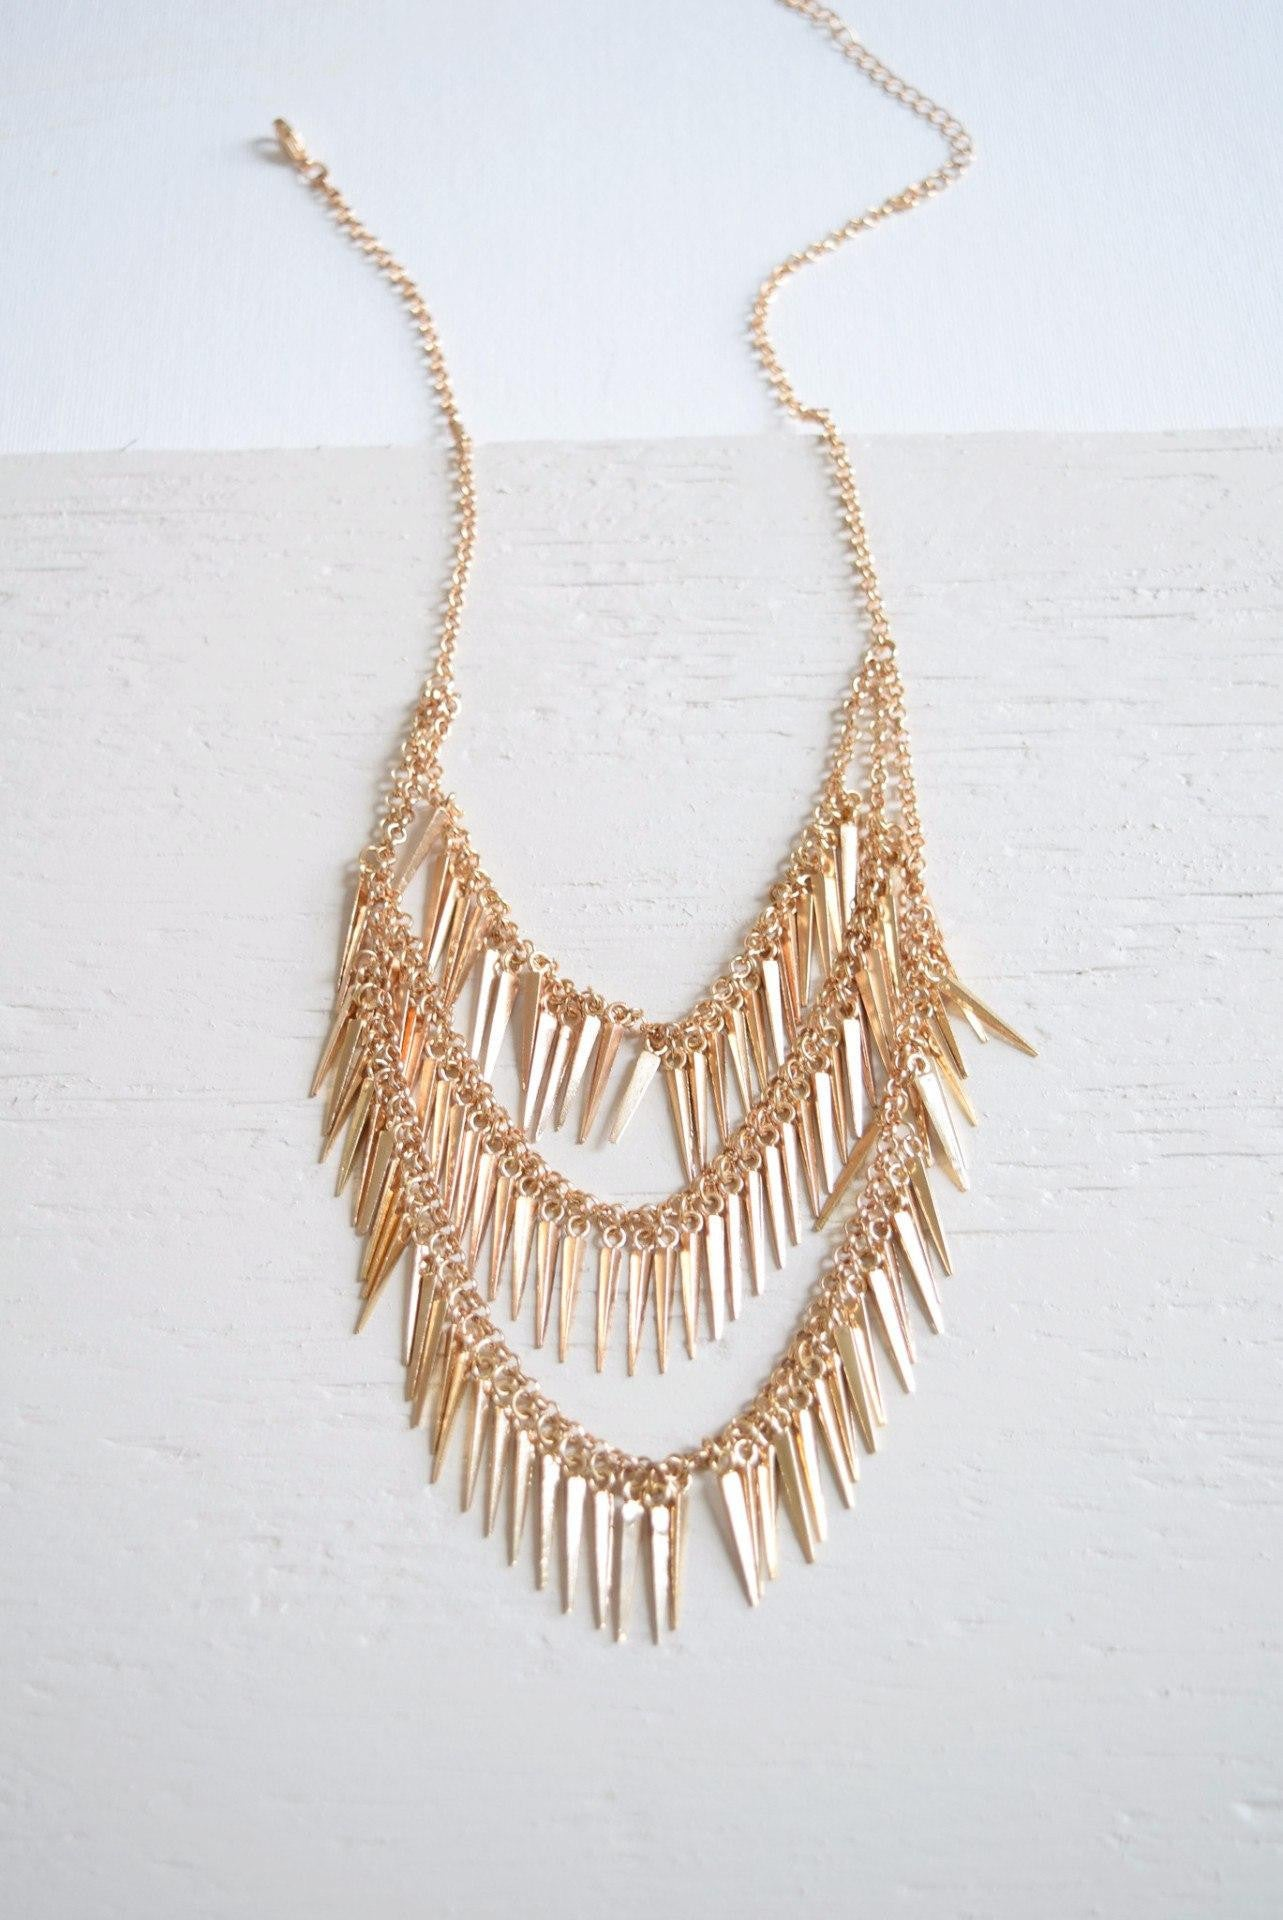 Layered Spikes Necklace - Necklace - MOD&SOUL Vintage Style Contemporary Fashion Jewelry - MOD&SOUL